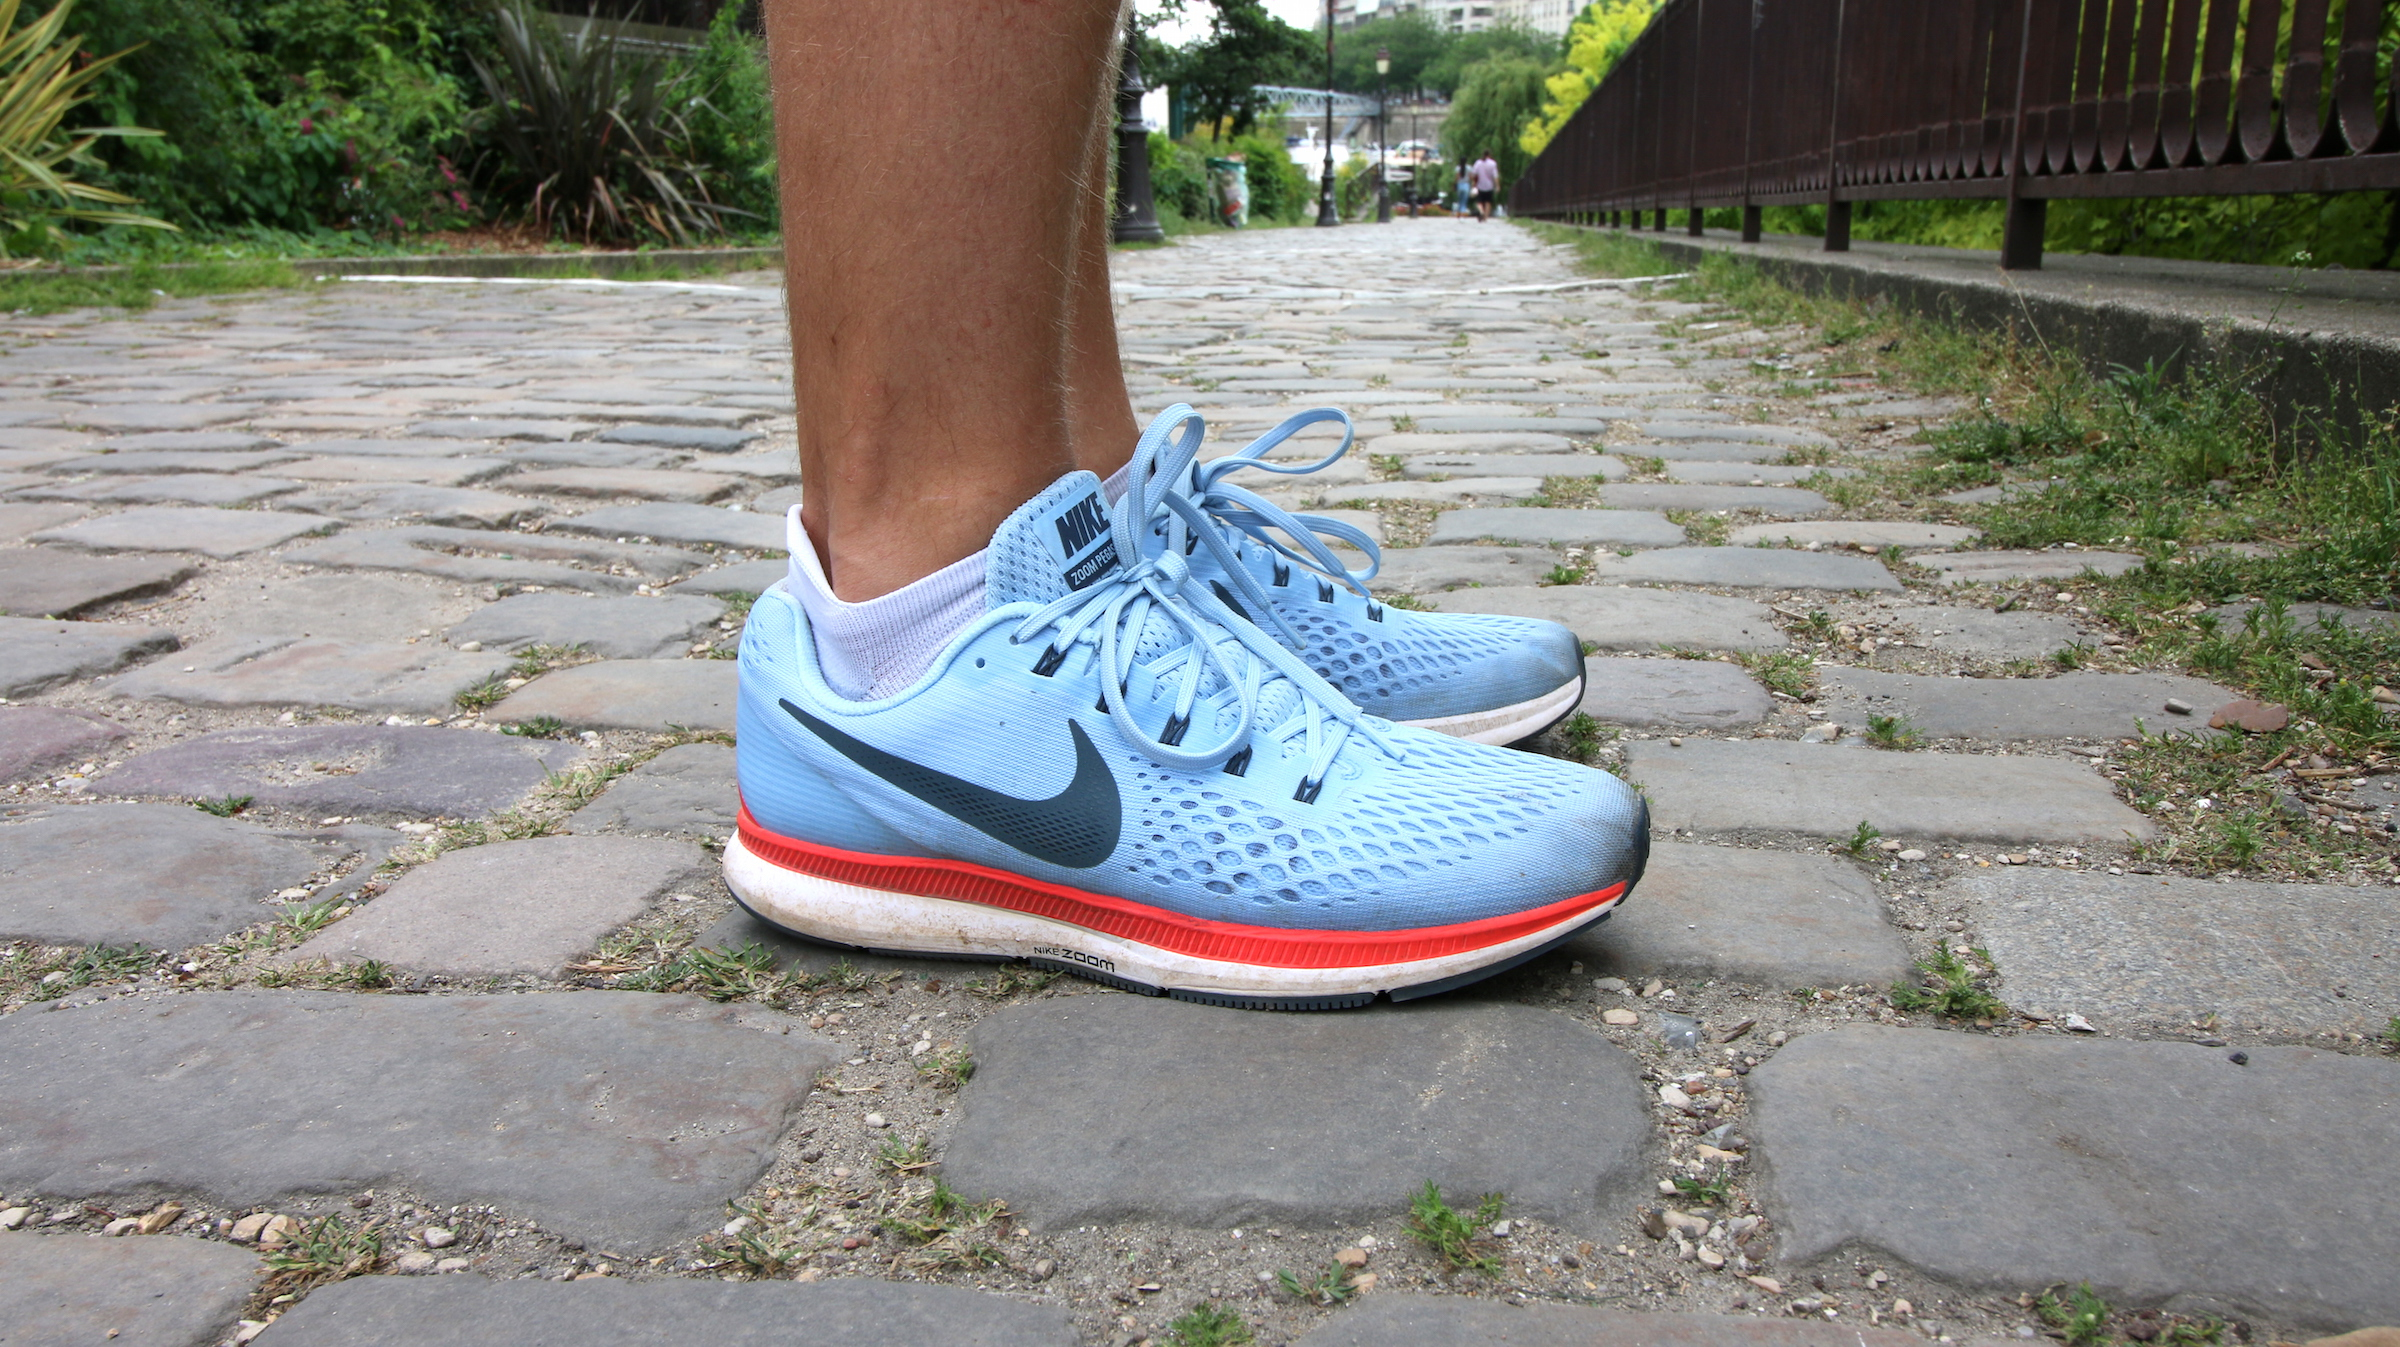 nike zoom pegasus 32 femme avis